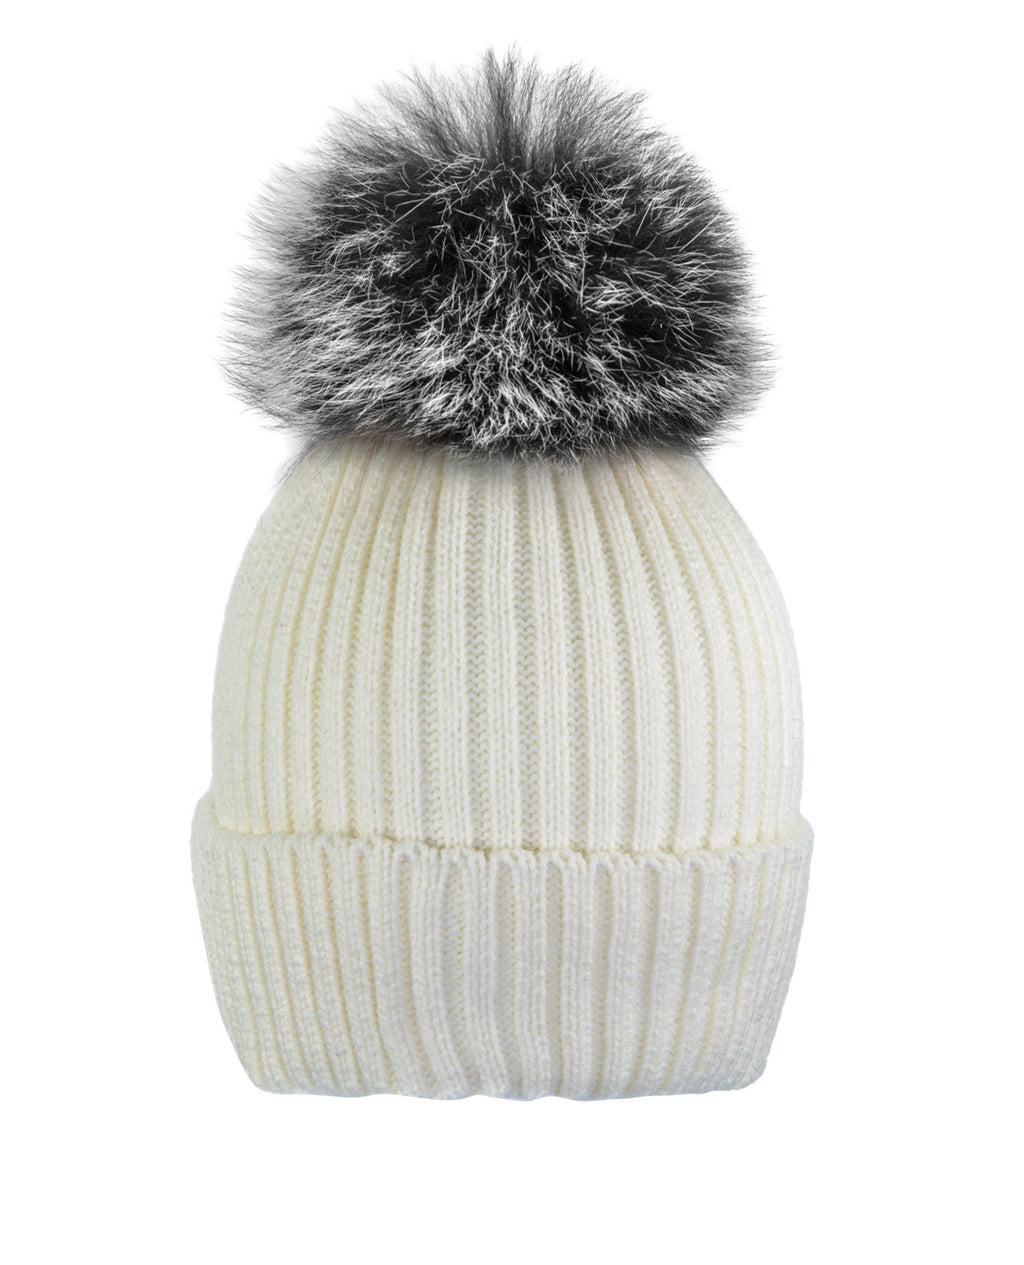 Cream White/Blk-wht Beanie Hat With Exclusive Pom Pom